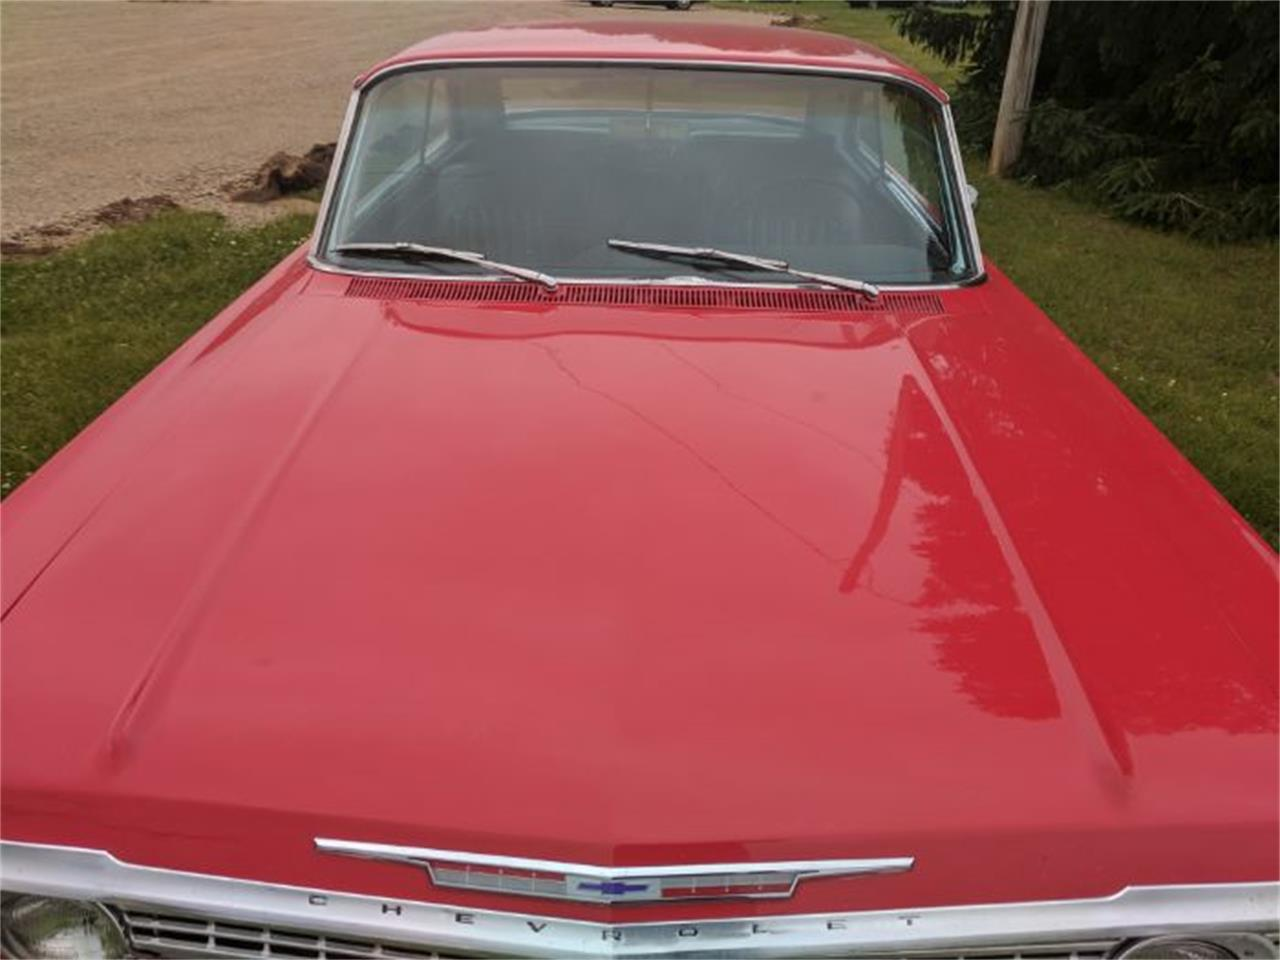 Large Picture of 1963 Chevrolet Impala located in Cadillac Michigan - $23,900.00 Offered by Classic Car Deals - LAFC